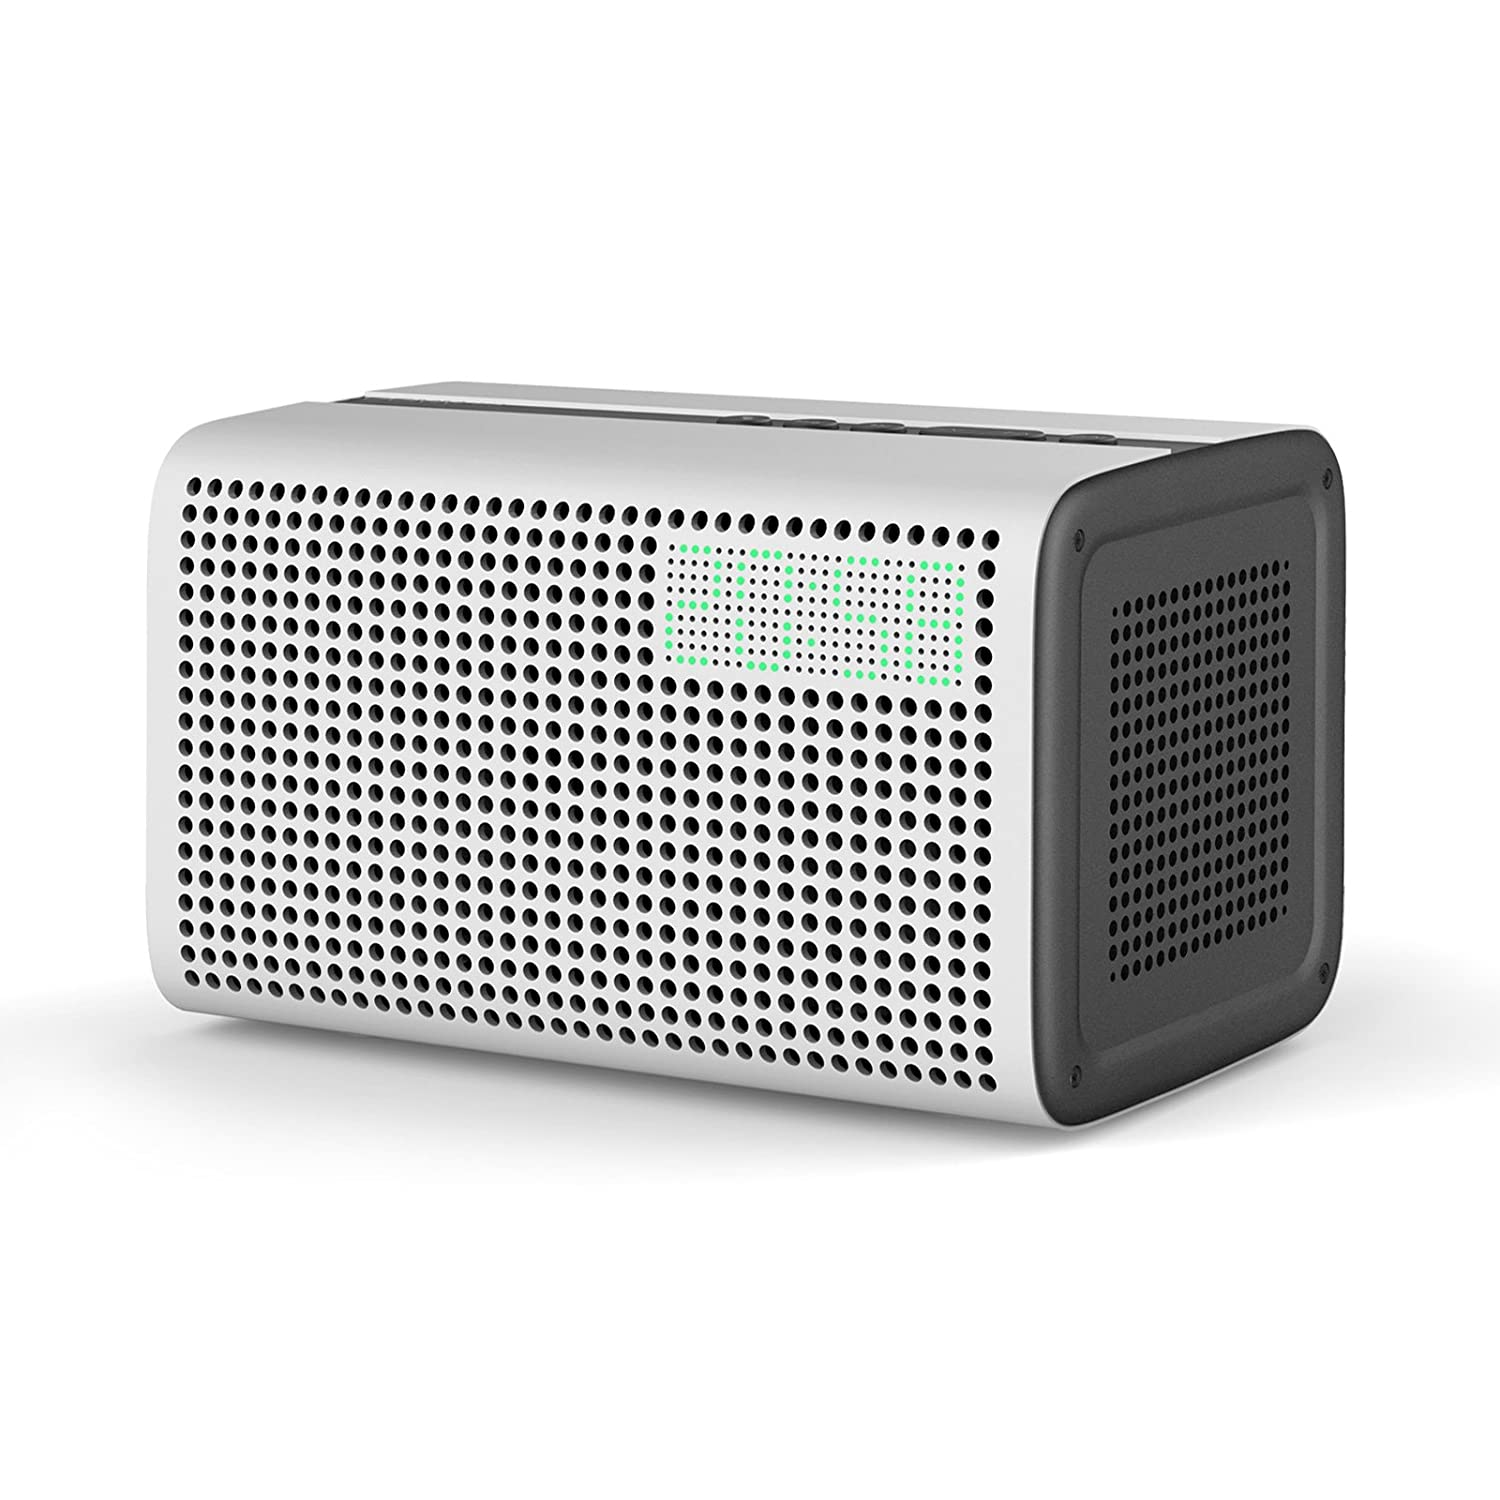 Wireless Speakers, GGMM E3 WiFi Bluetooth Bedside Speaker, with Alexa Built-in, LED Display Clock Alarm, USB Port to Charge for Smart Devices, 20 Watts Home Audio Spotify AirPlay Speaker (Blue) ES-201-5